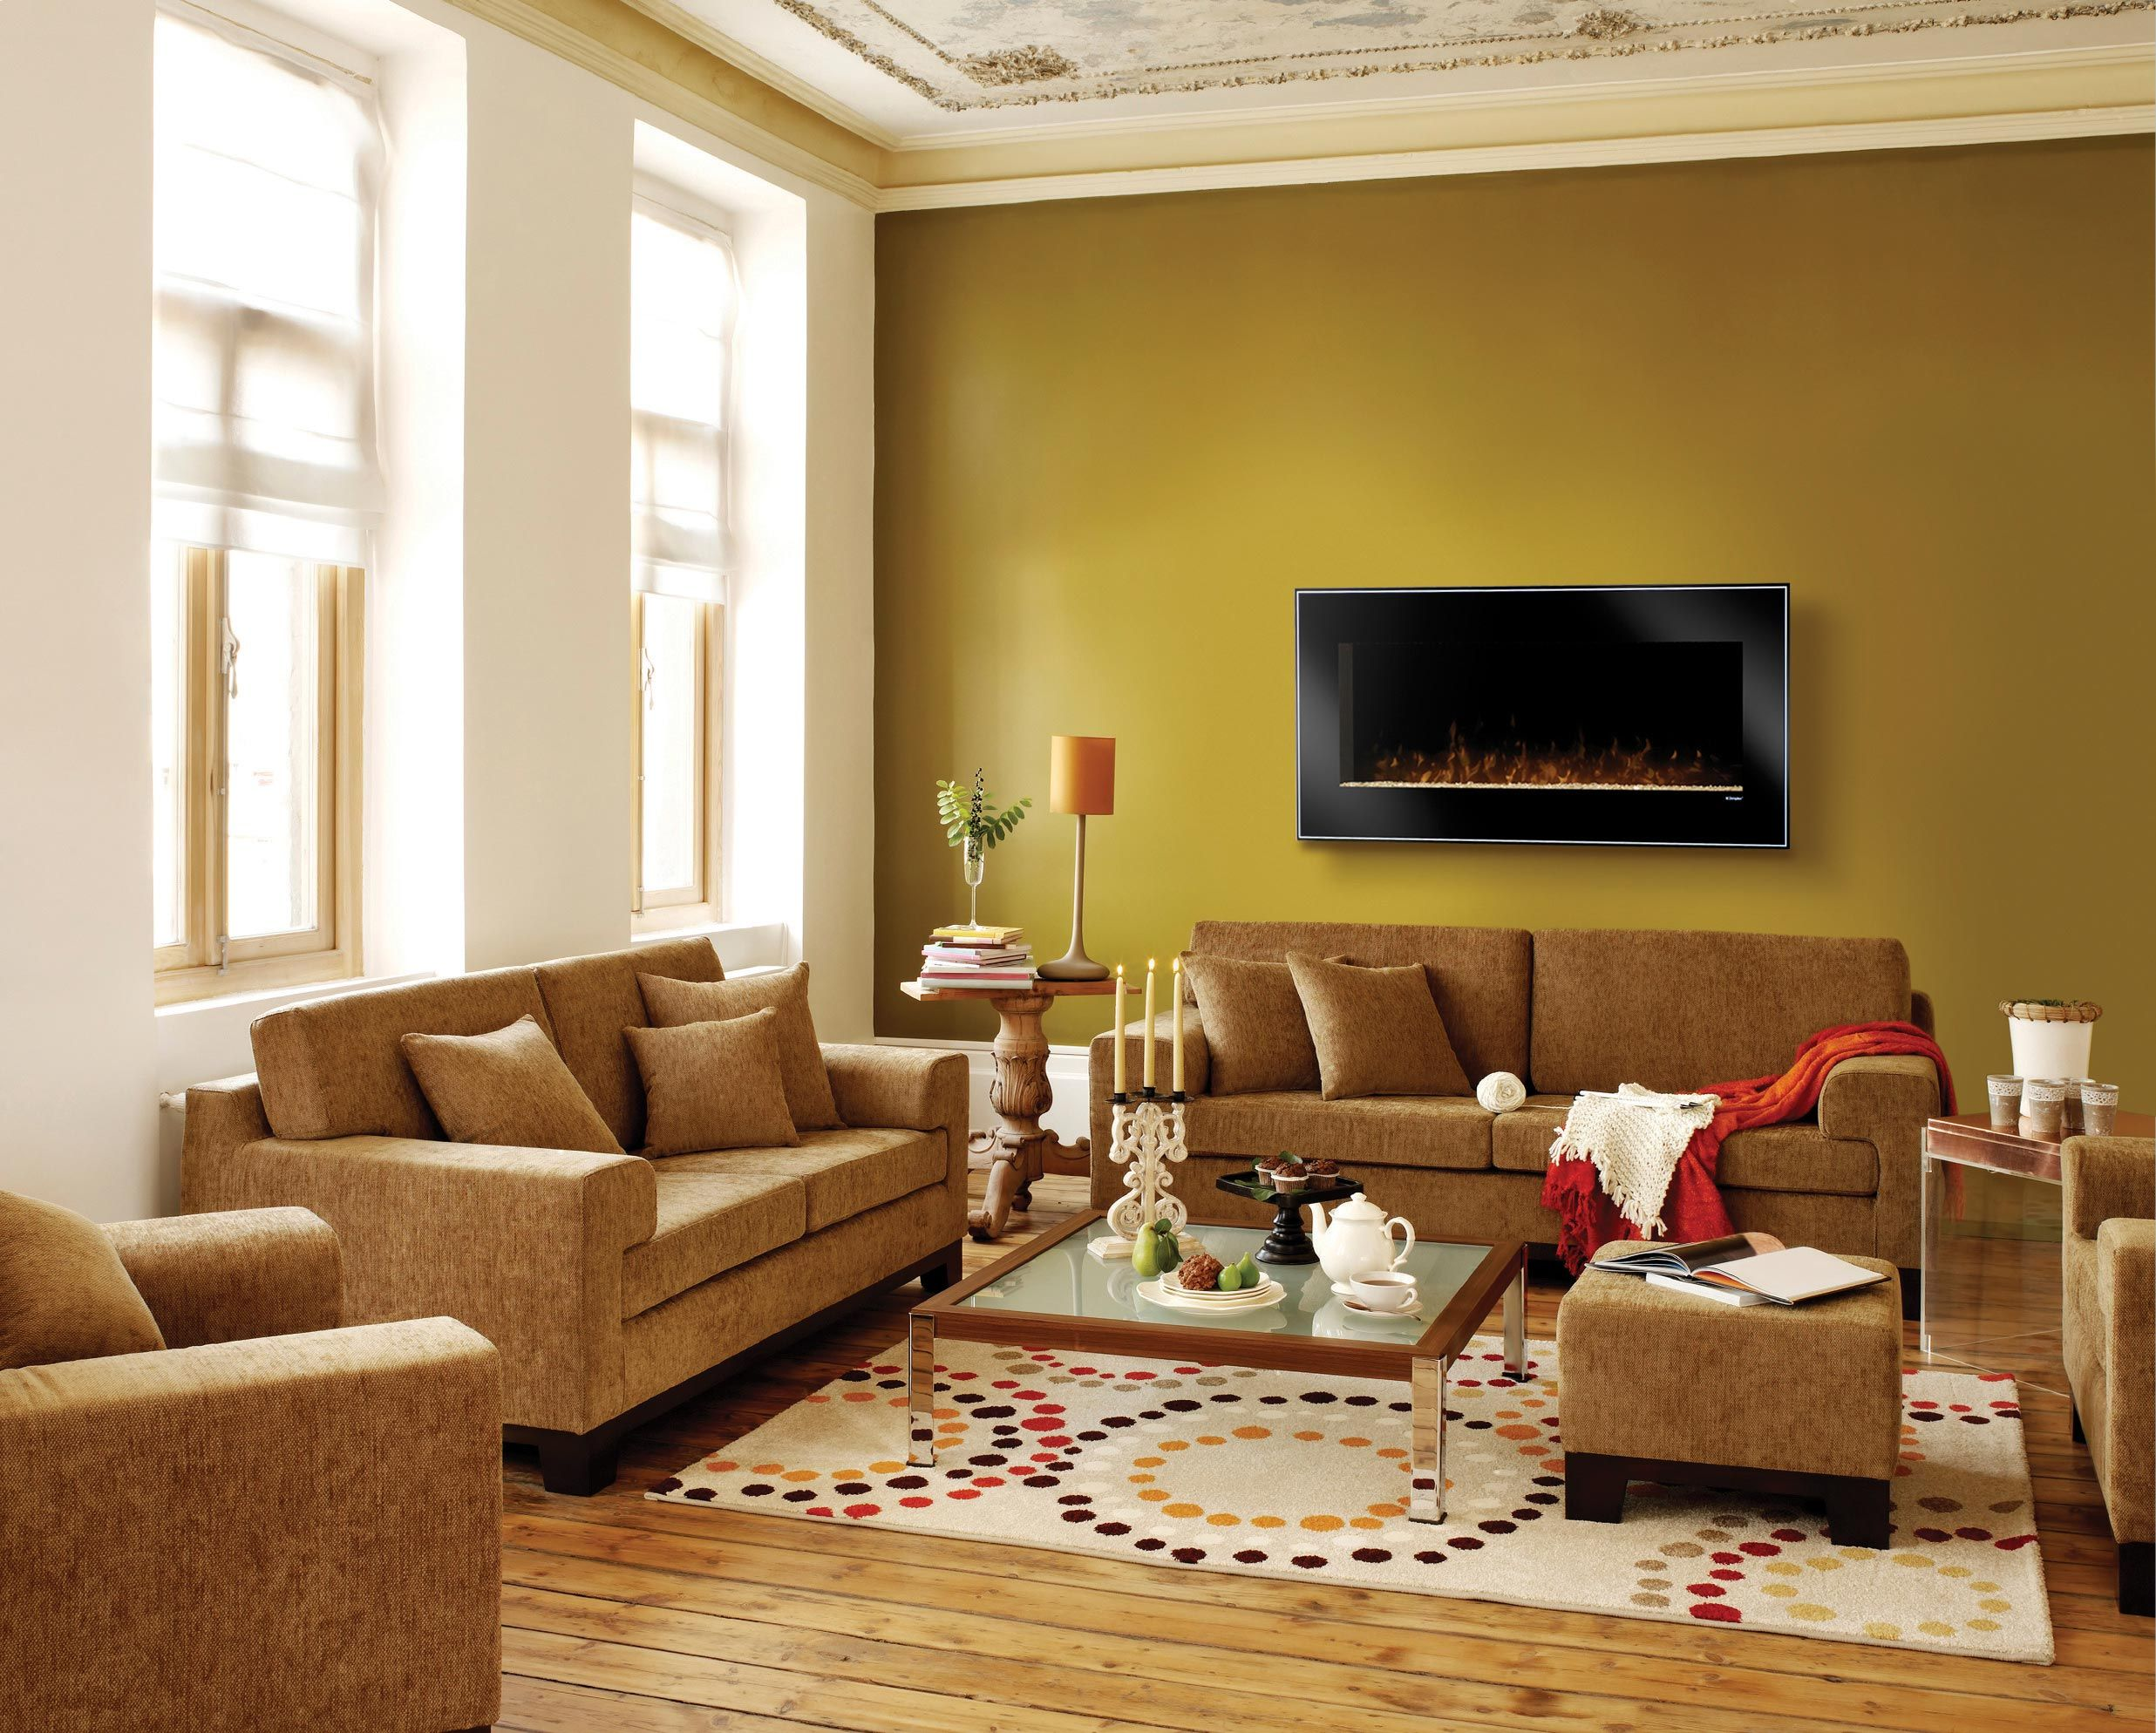 Dimplex Dusk Wall Mount Electric Fireplace | Relax into home ...